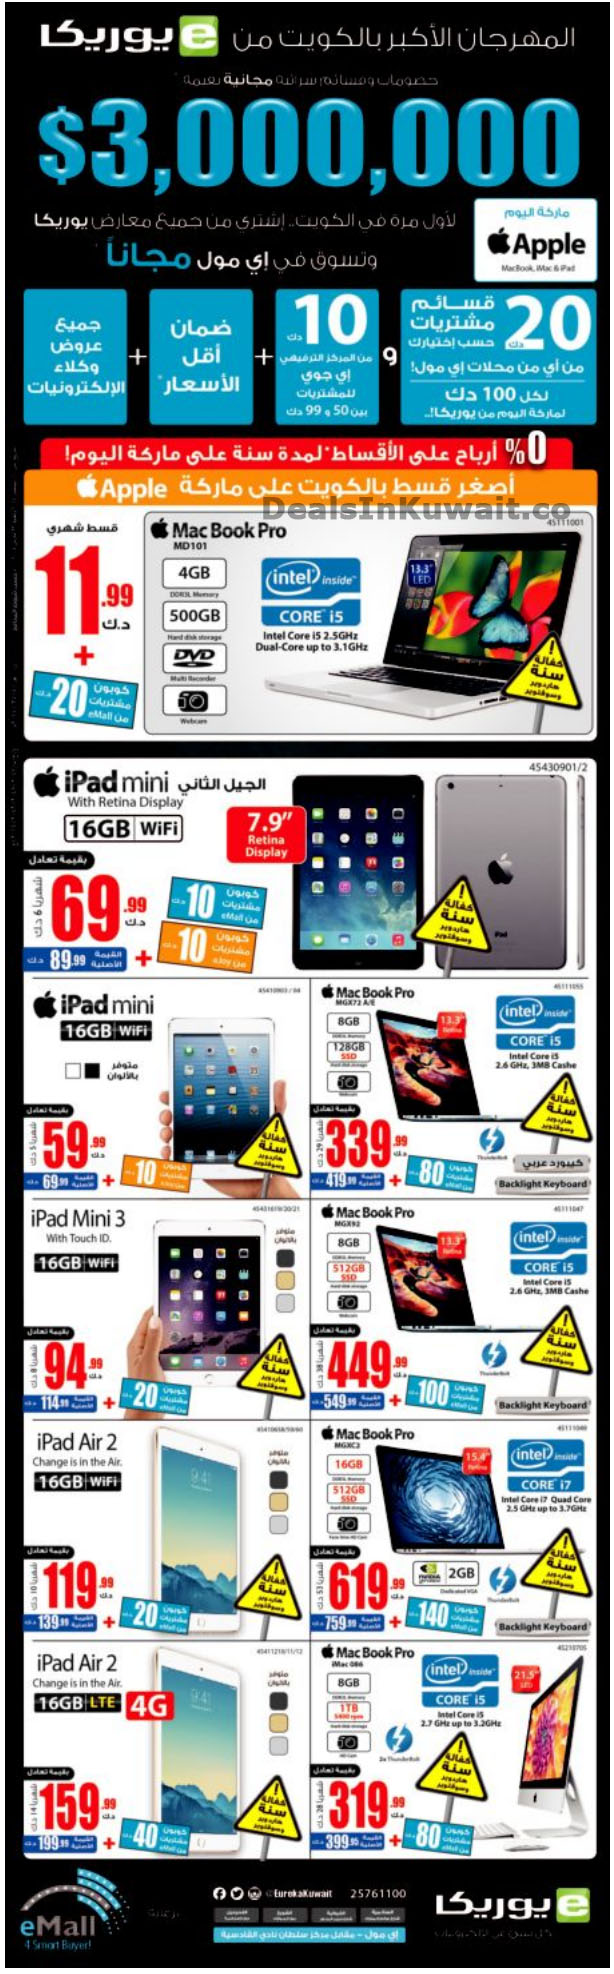 Eureka Kuwait: Today's Offers – 10 February 2015 | Deals in